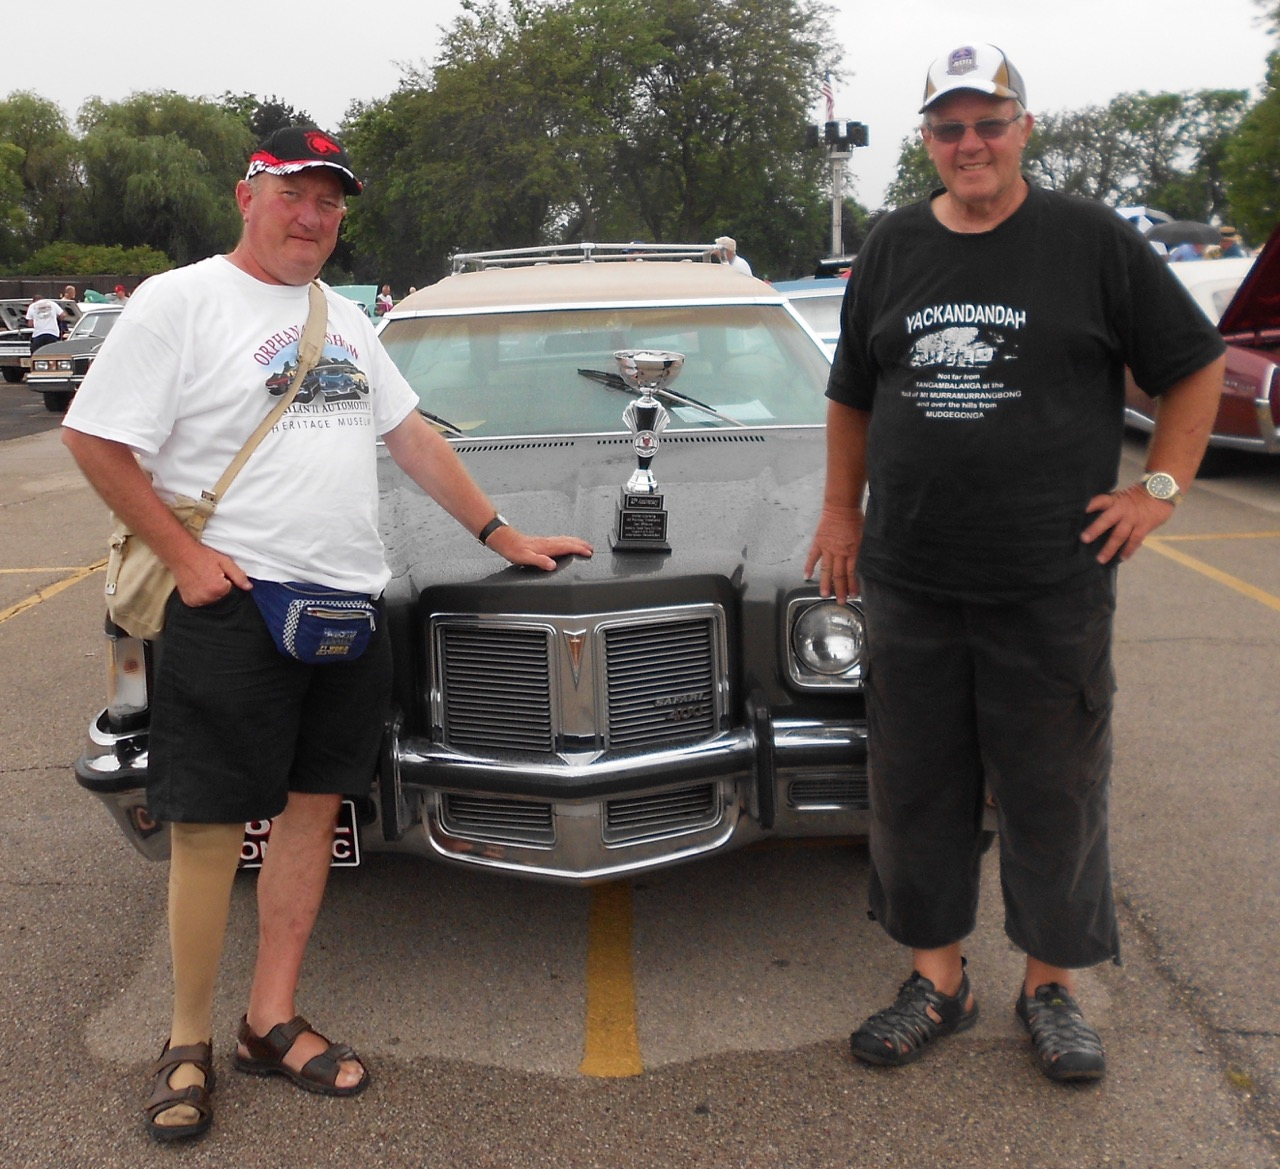 Malcolm (left) and Pete and their Pontiac and its trophy